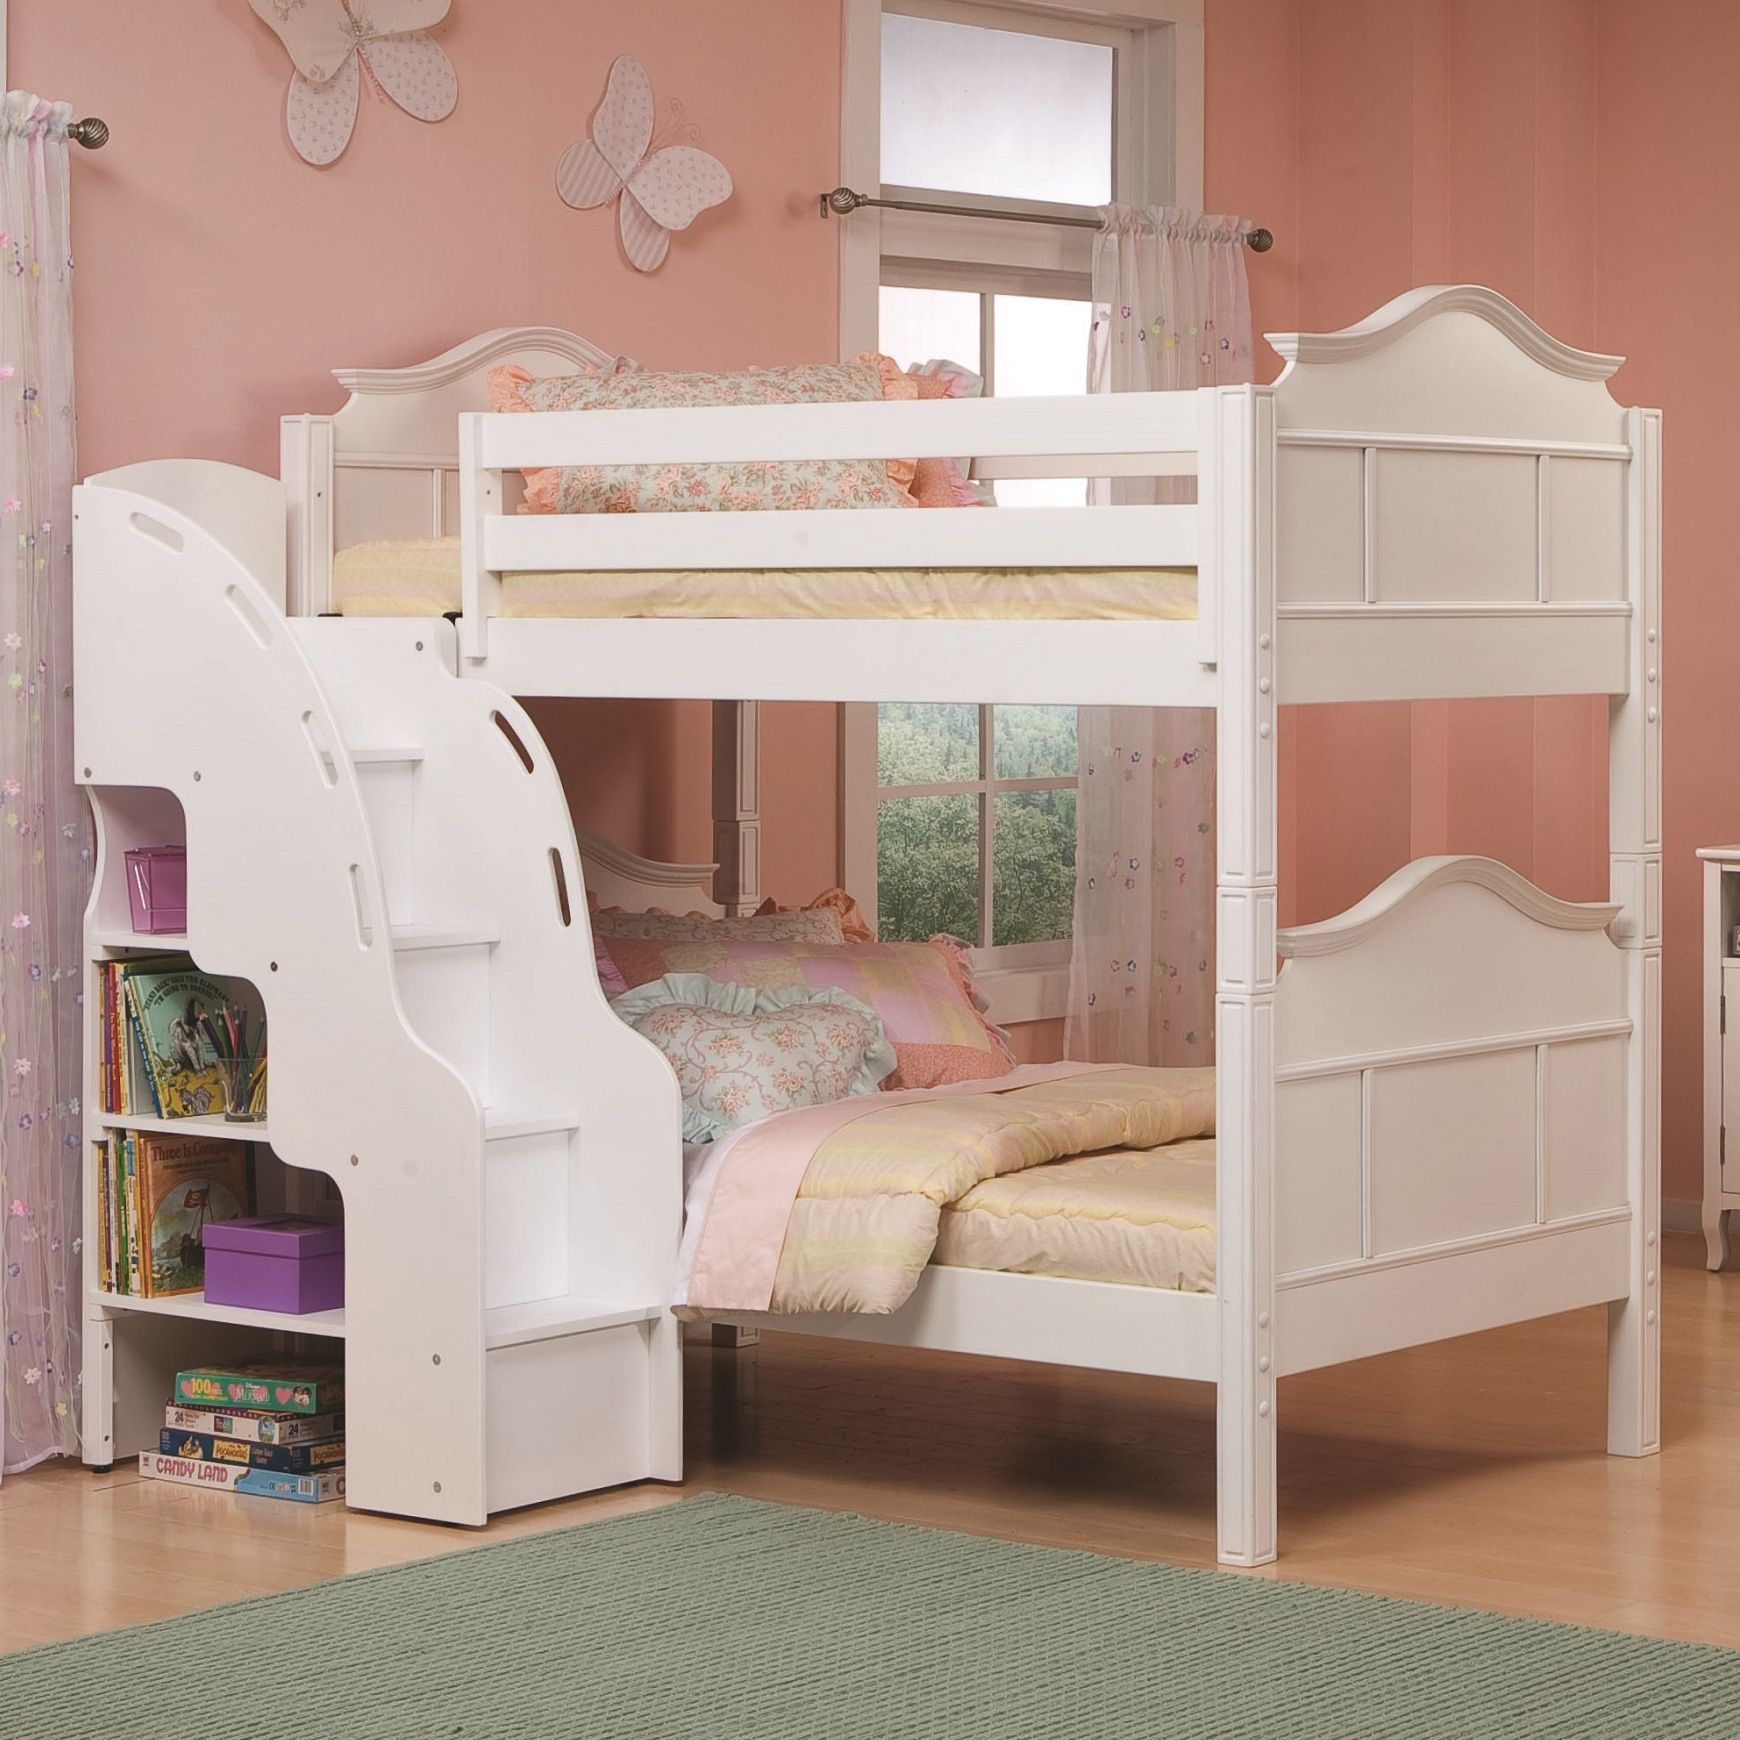 The Bolton Emmaline Collection Bunk Bed Features A French